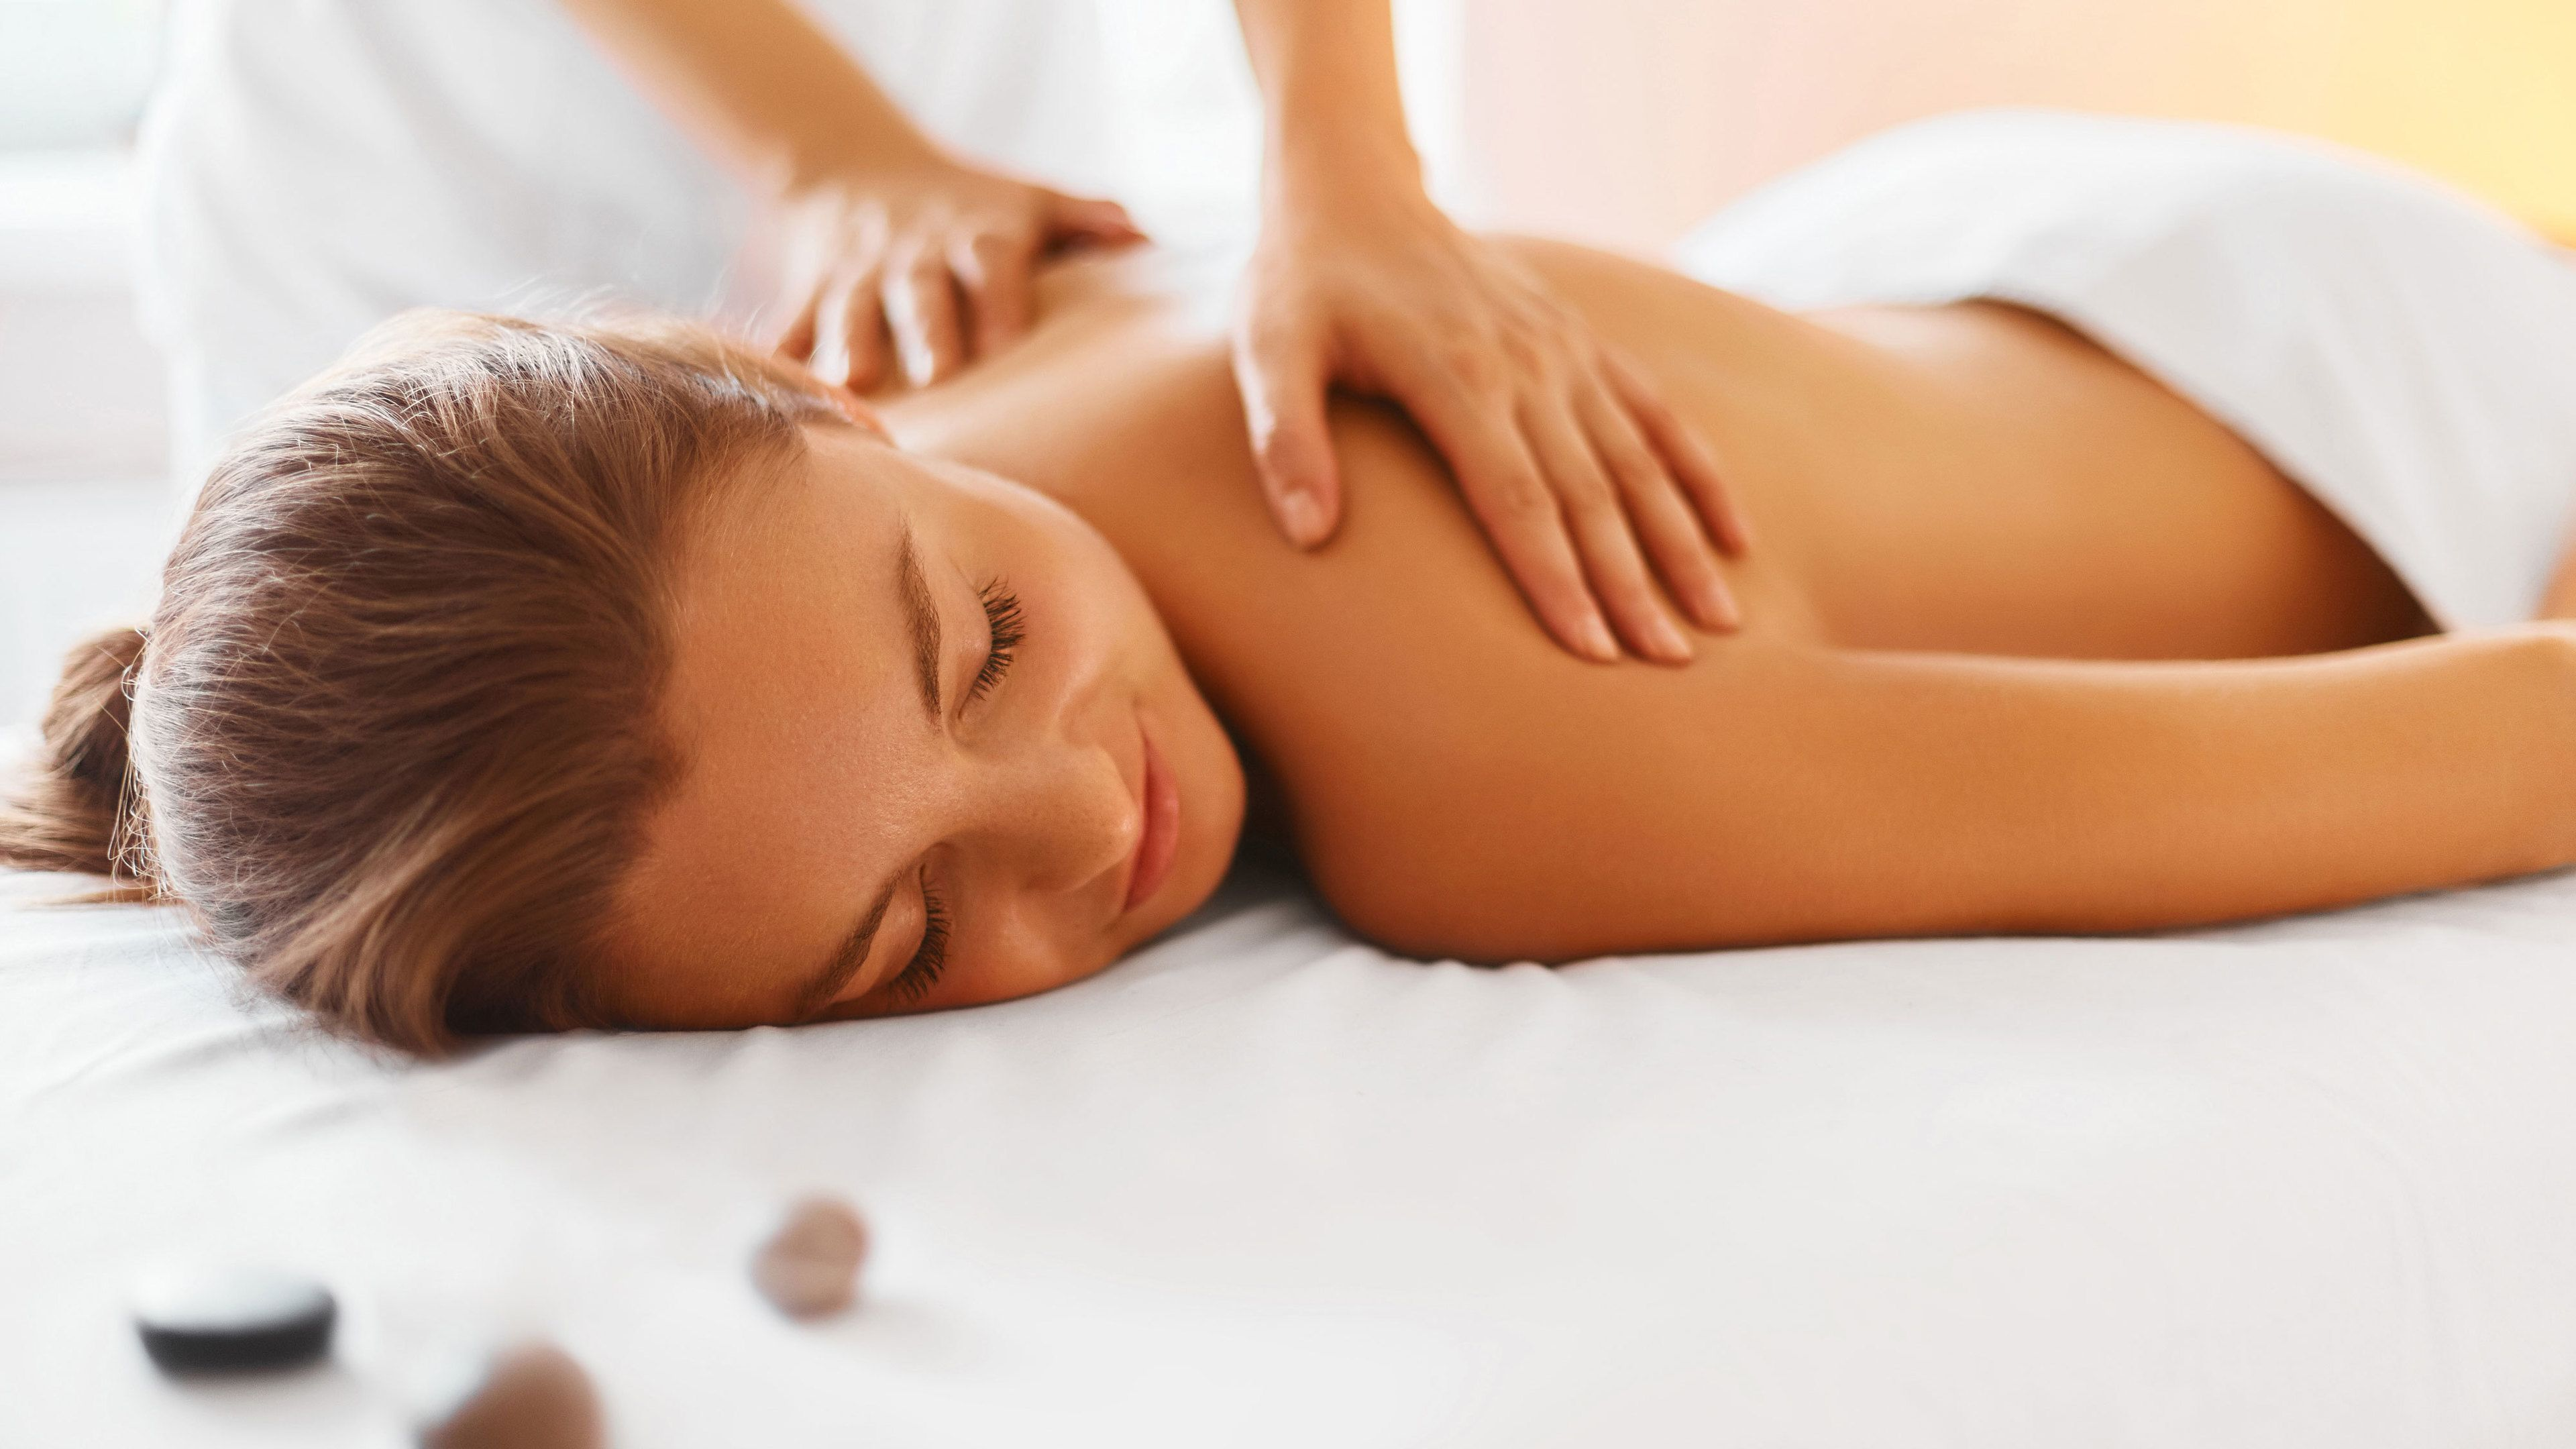 Woman getting a massage at a spa in Hoi An